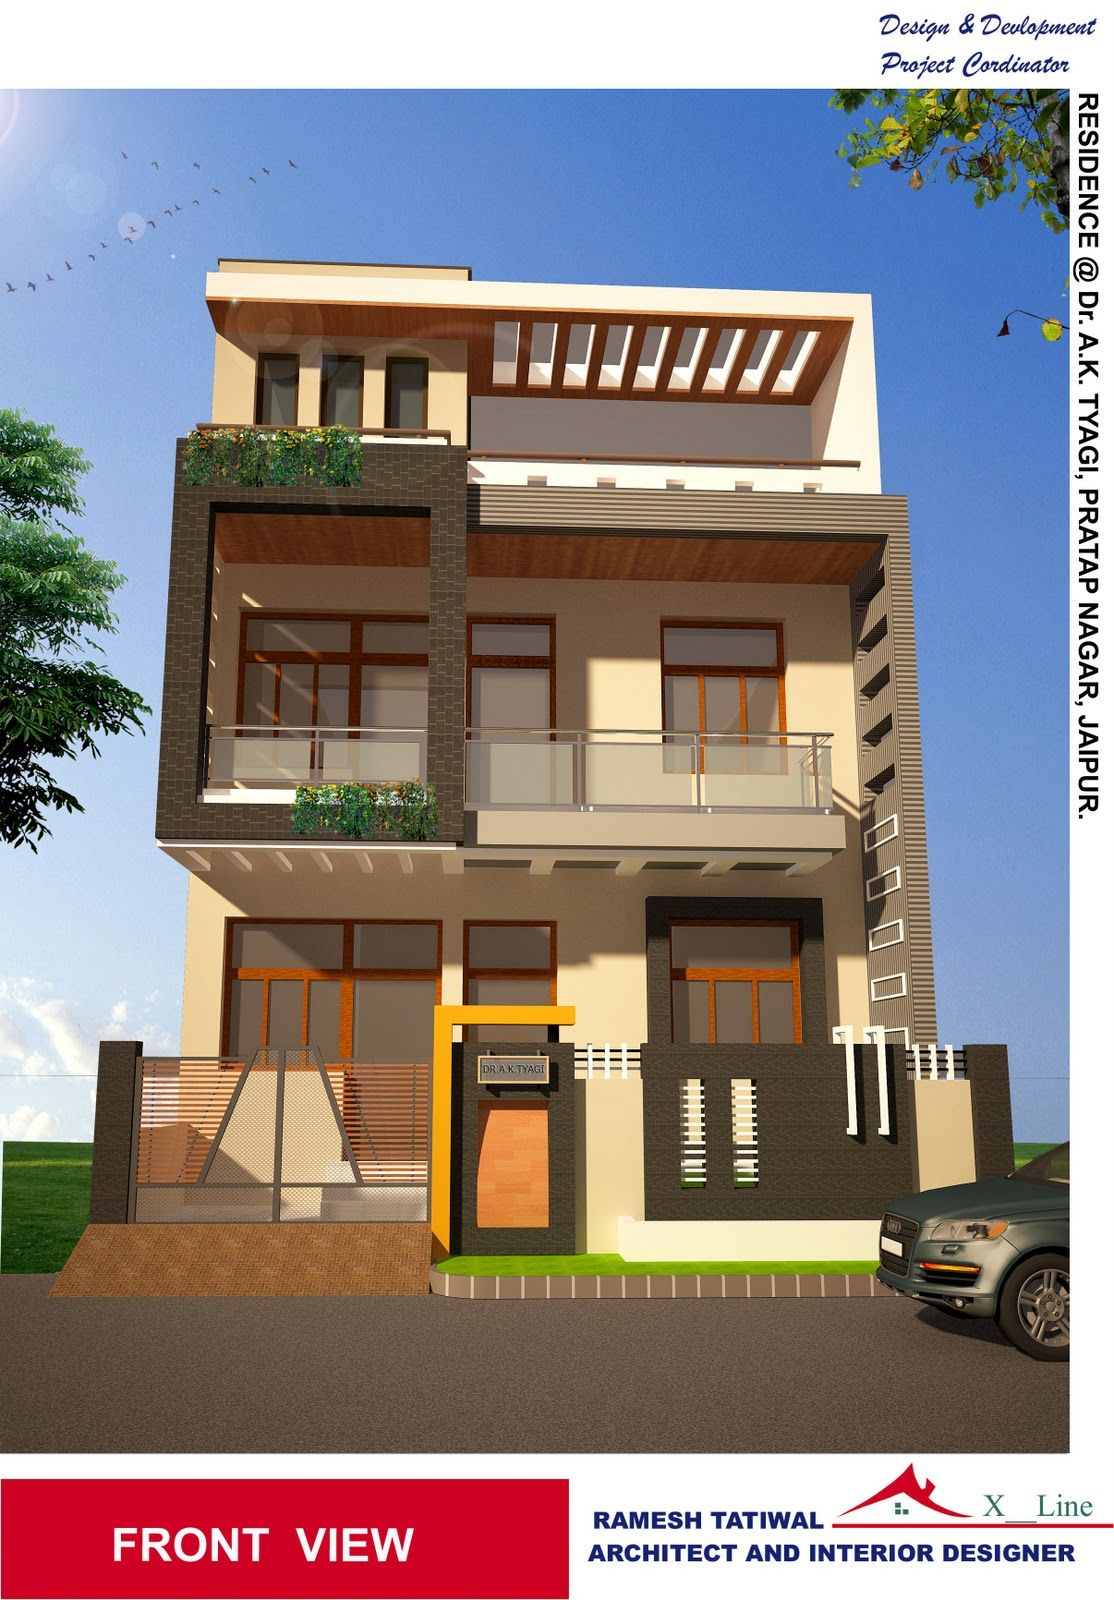 Housedesigns modern indian home architecture design from for Home exterior design india